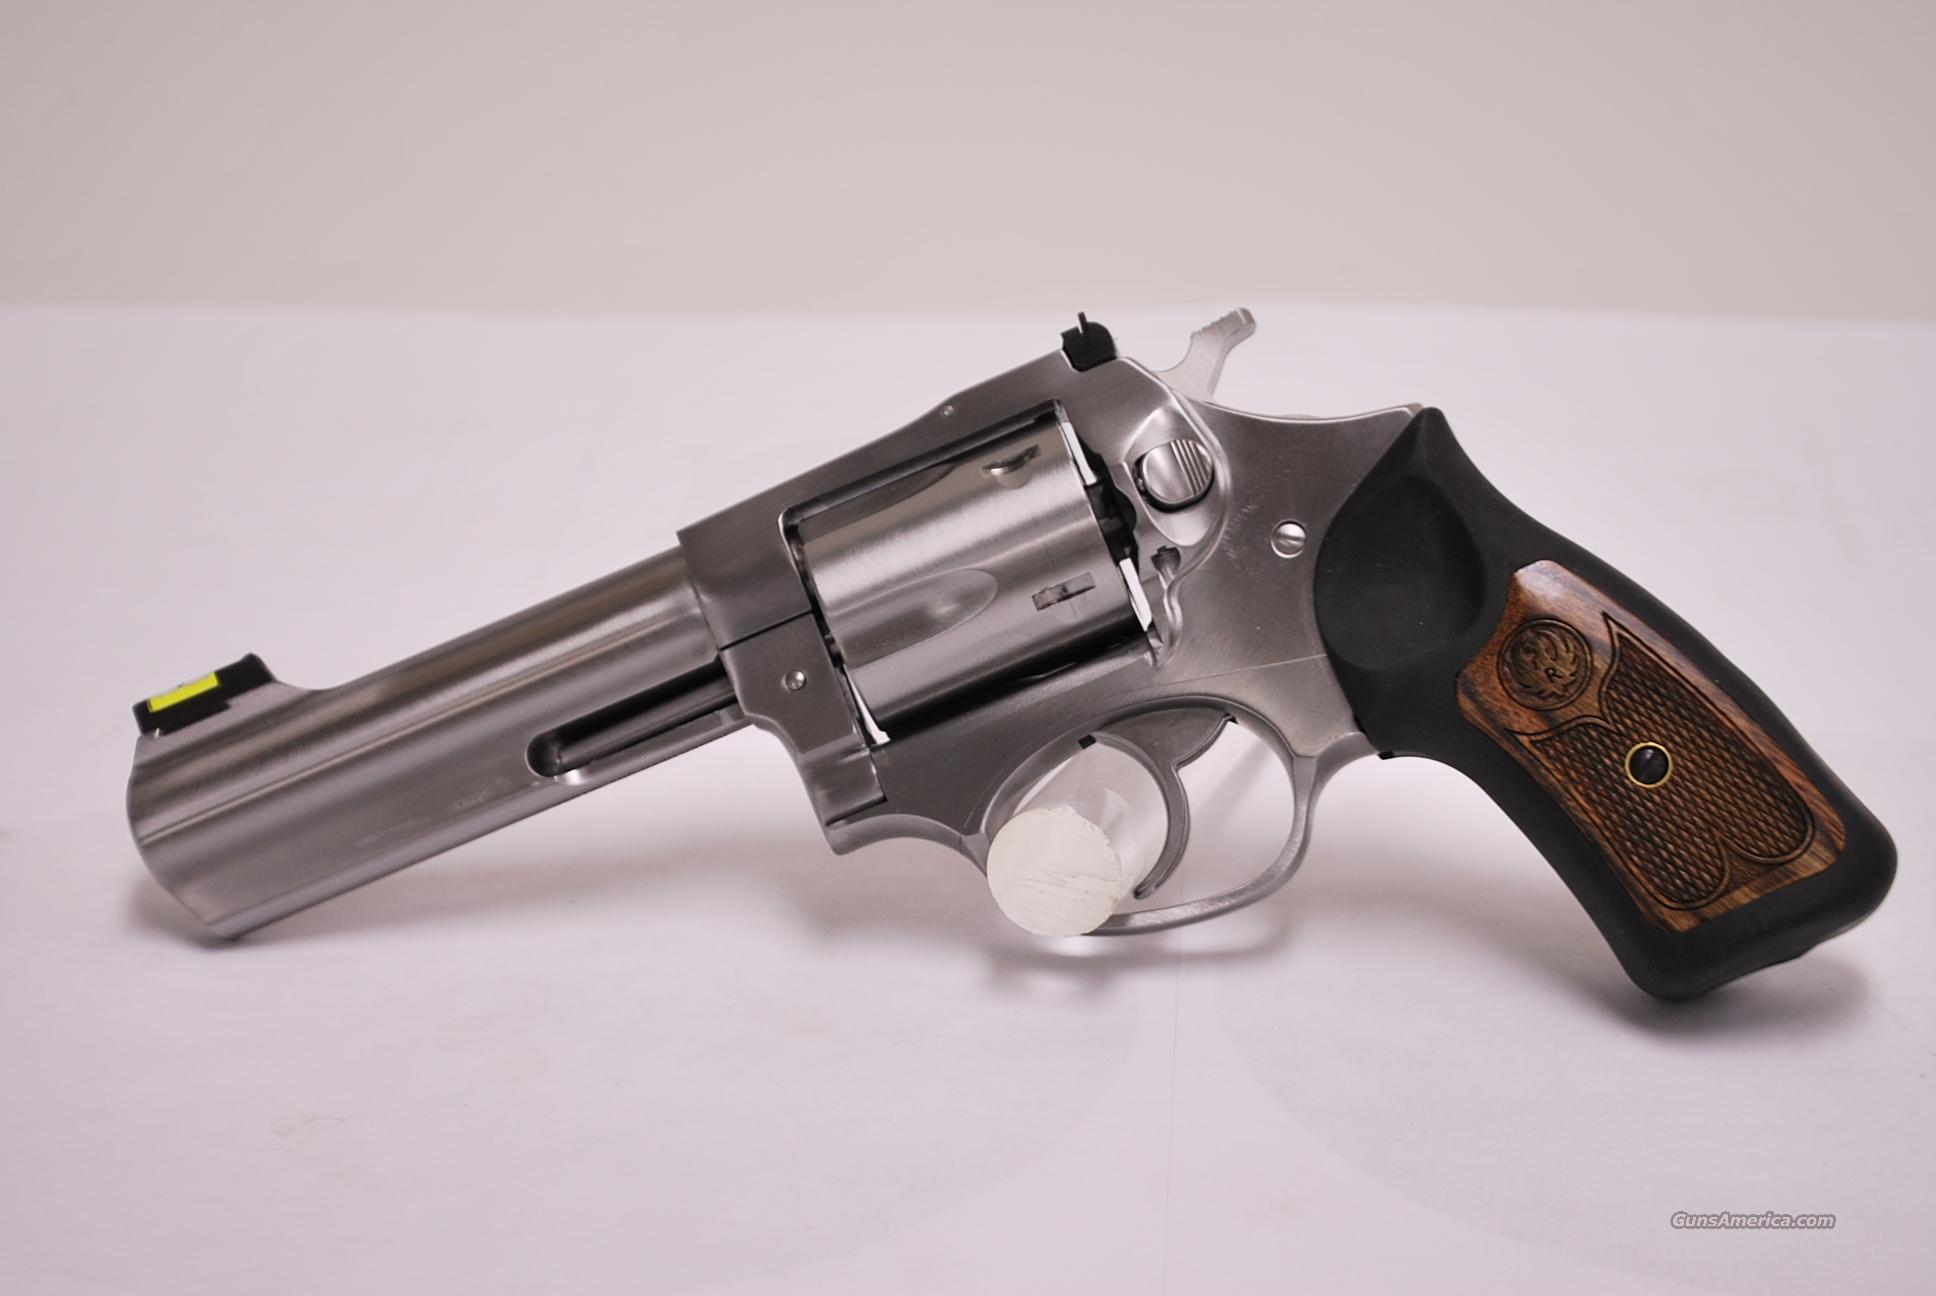 Ruger SP101 .357 Mag, 4 inch barrel  Guns > Pistols > Ruger Double Action Revolver > SP101 Type